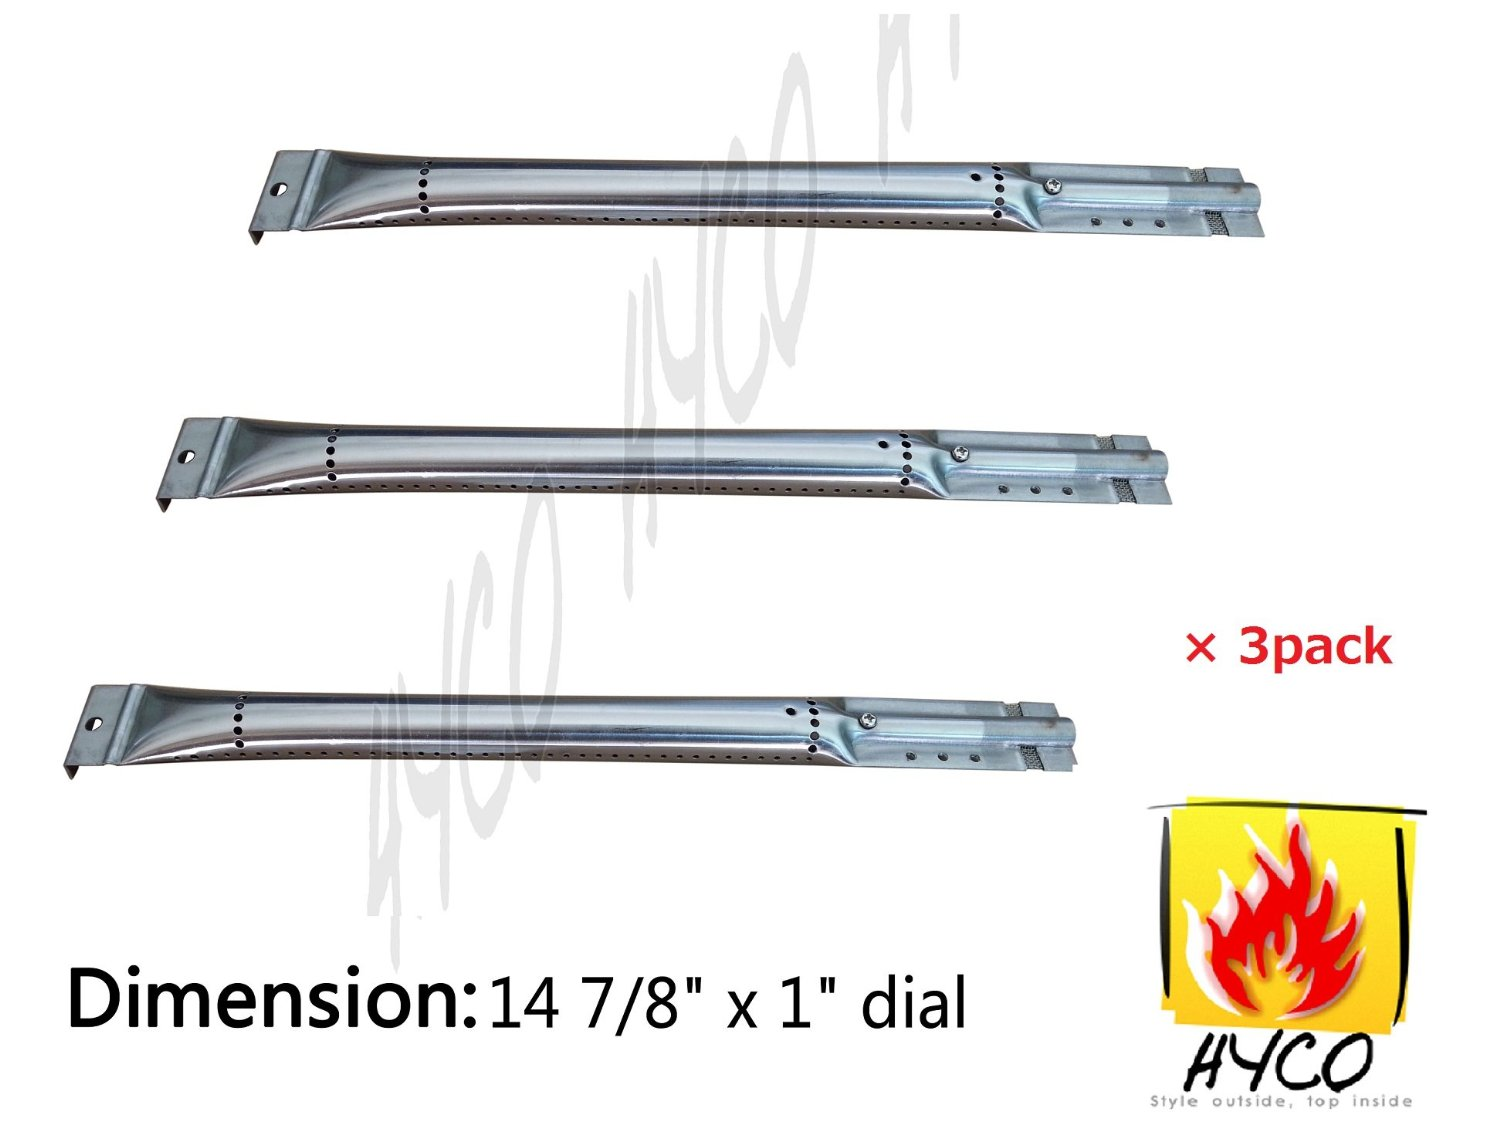 Hyco Replacement Straight Stainless Steel Pipe Burner for Kenmore Sears, K Mart, Nexgrill, Lowes Model Grills, hy16791 (3-pack)